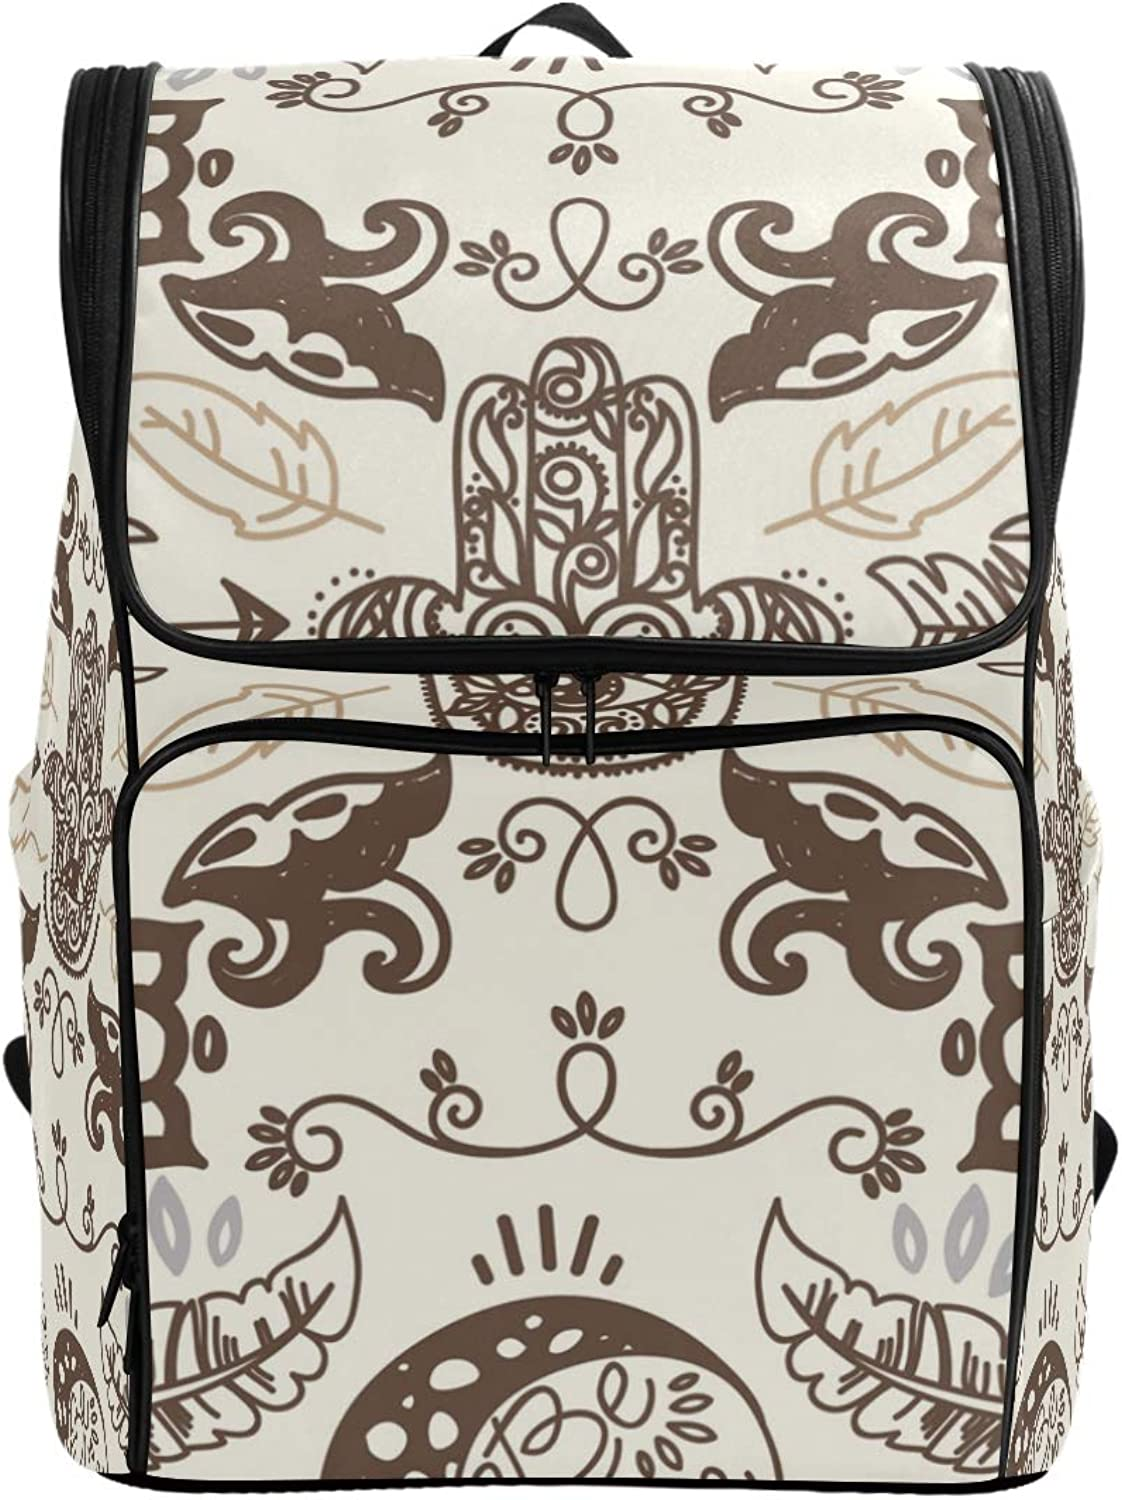 FANTAZIO Doodle Moons and Hamsa Symbol Laptop Outdoor Backpack Travel Hiking Camping Rucksack Pack, Casual Large College School Daypack